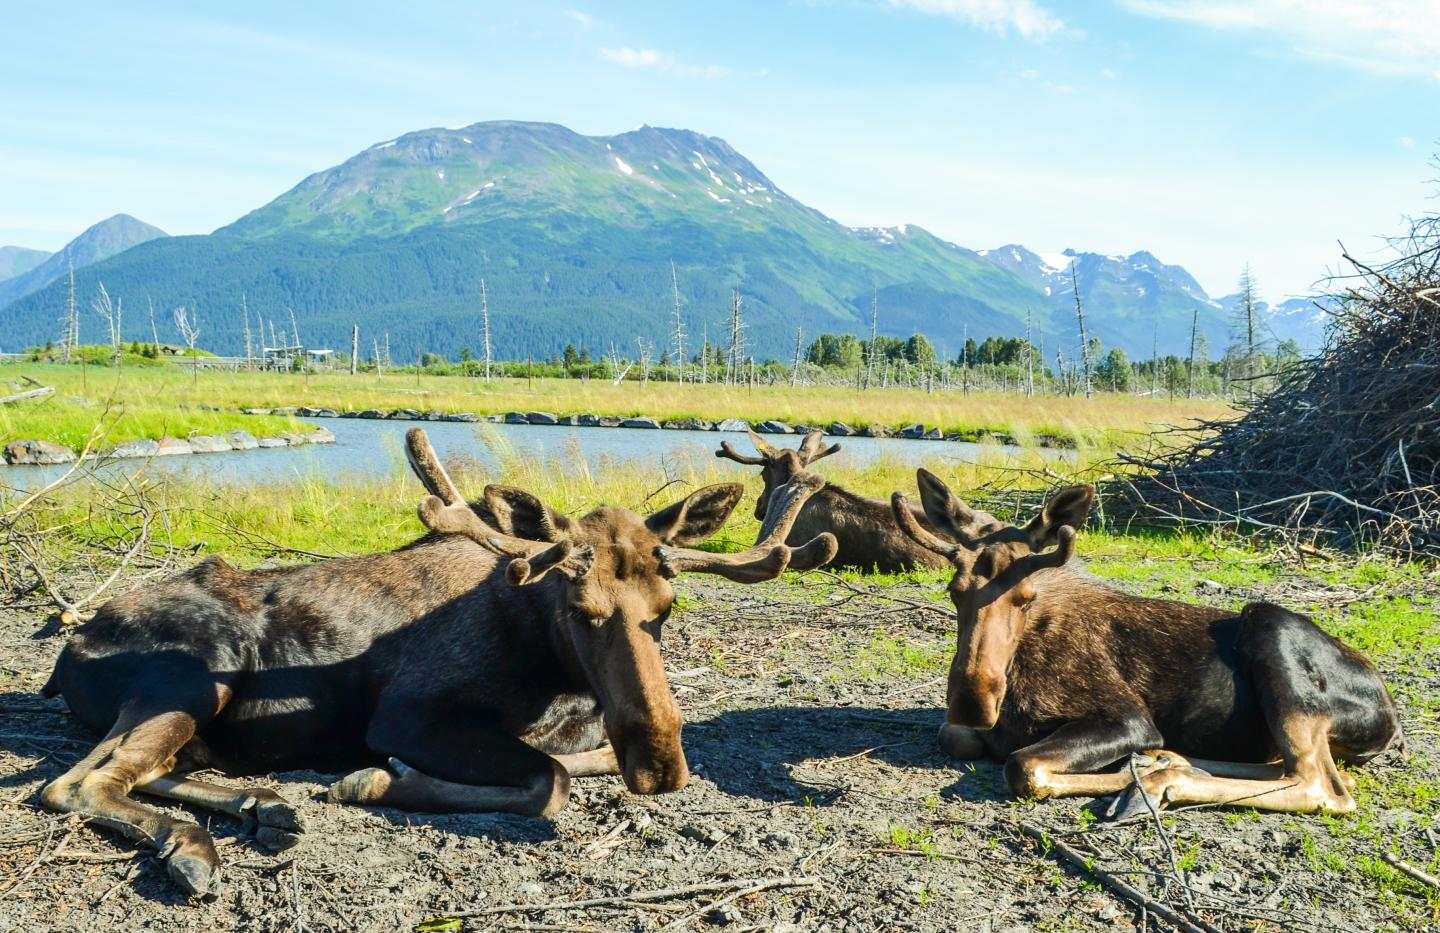 Students encounter reindeer on summer adventure and service program in Alaska.